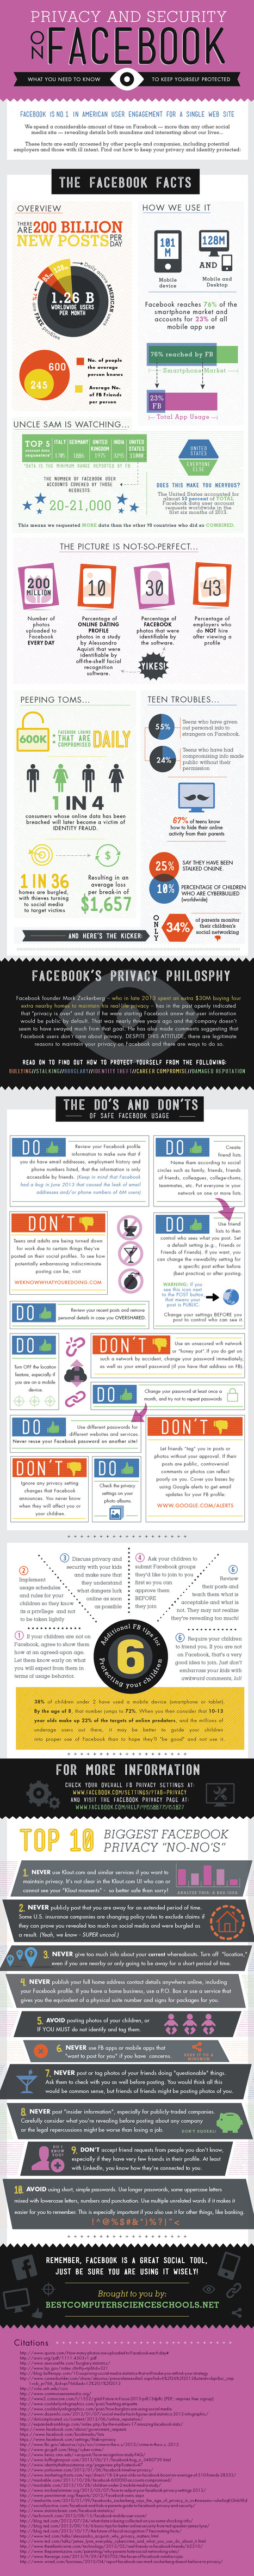 Infographic:  Everything you need to know about privacy on Facebook | iEduc | Scoop.it